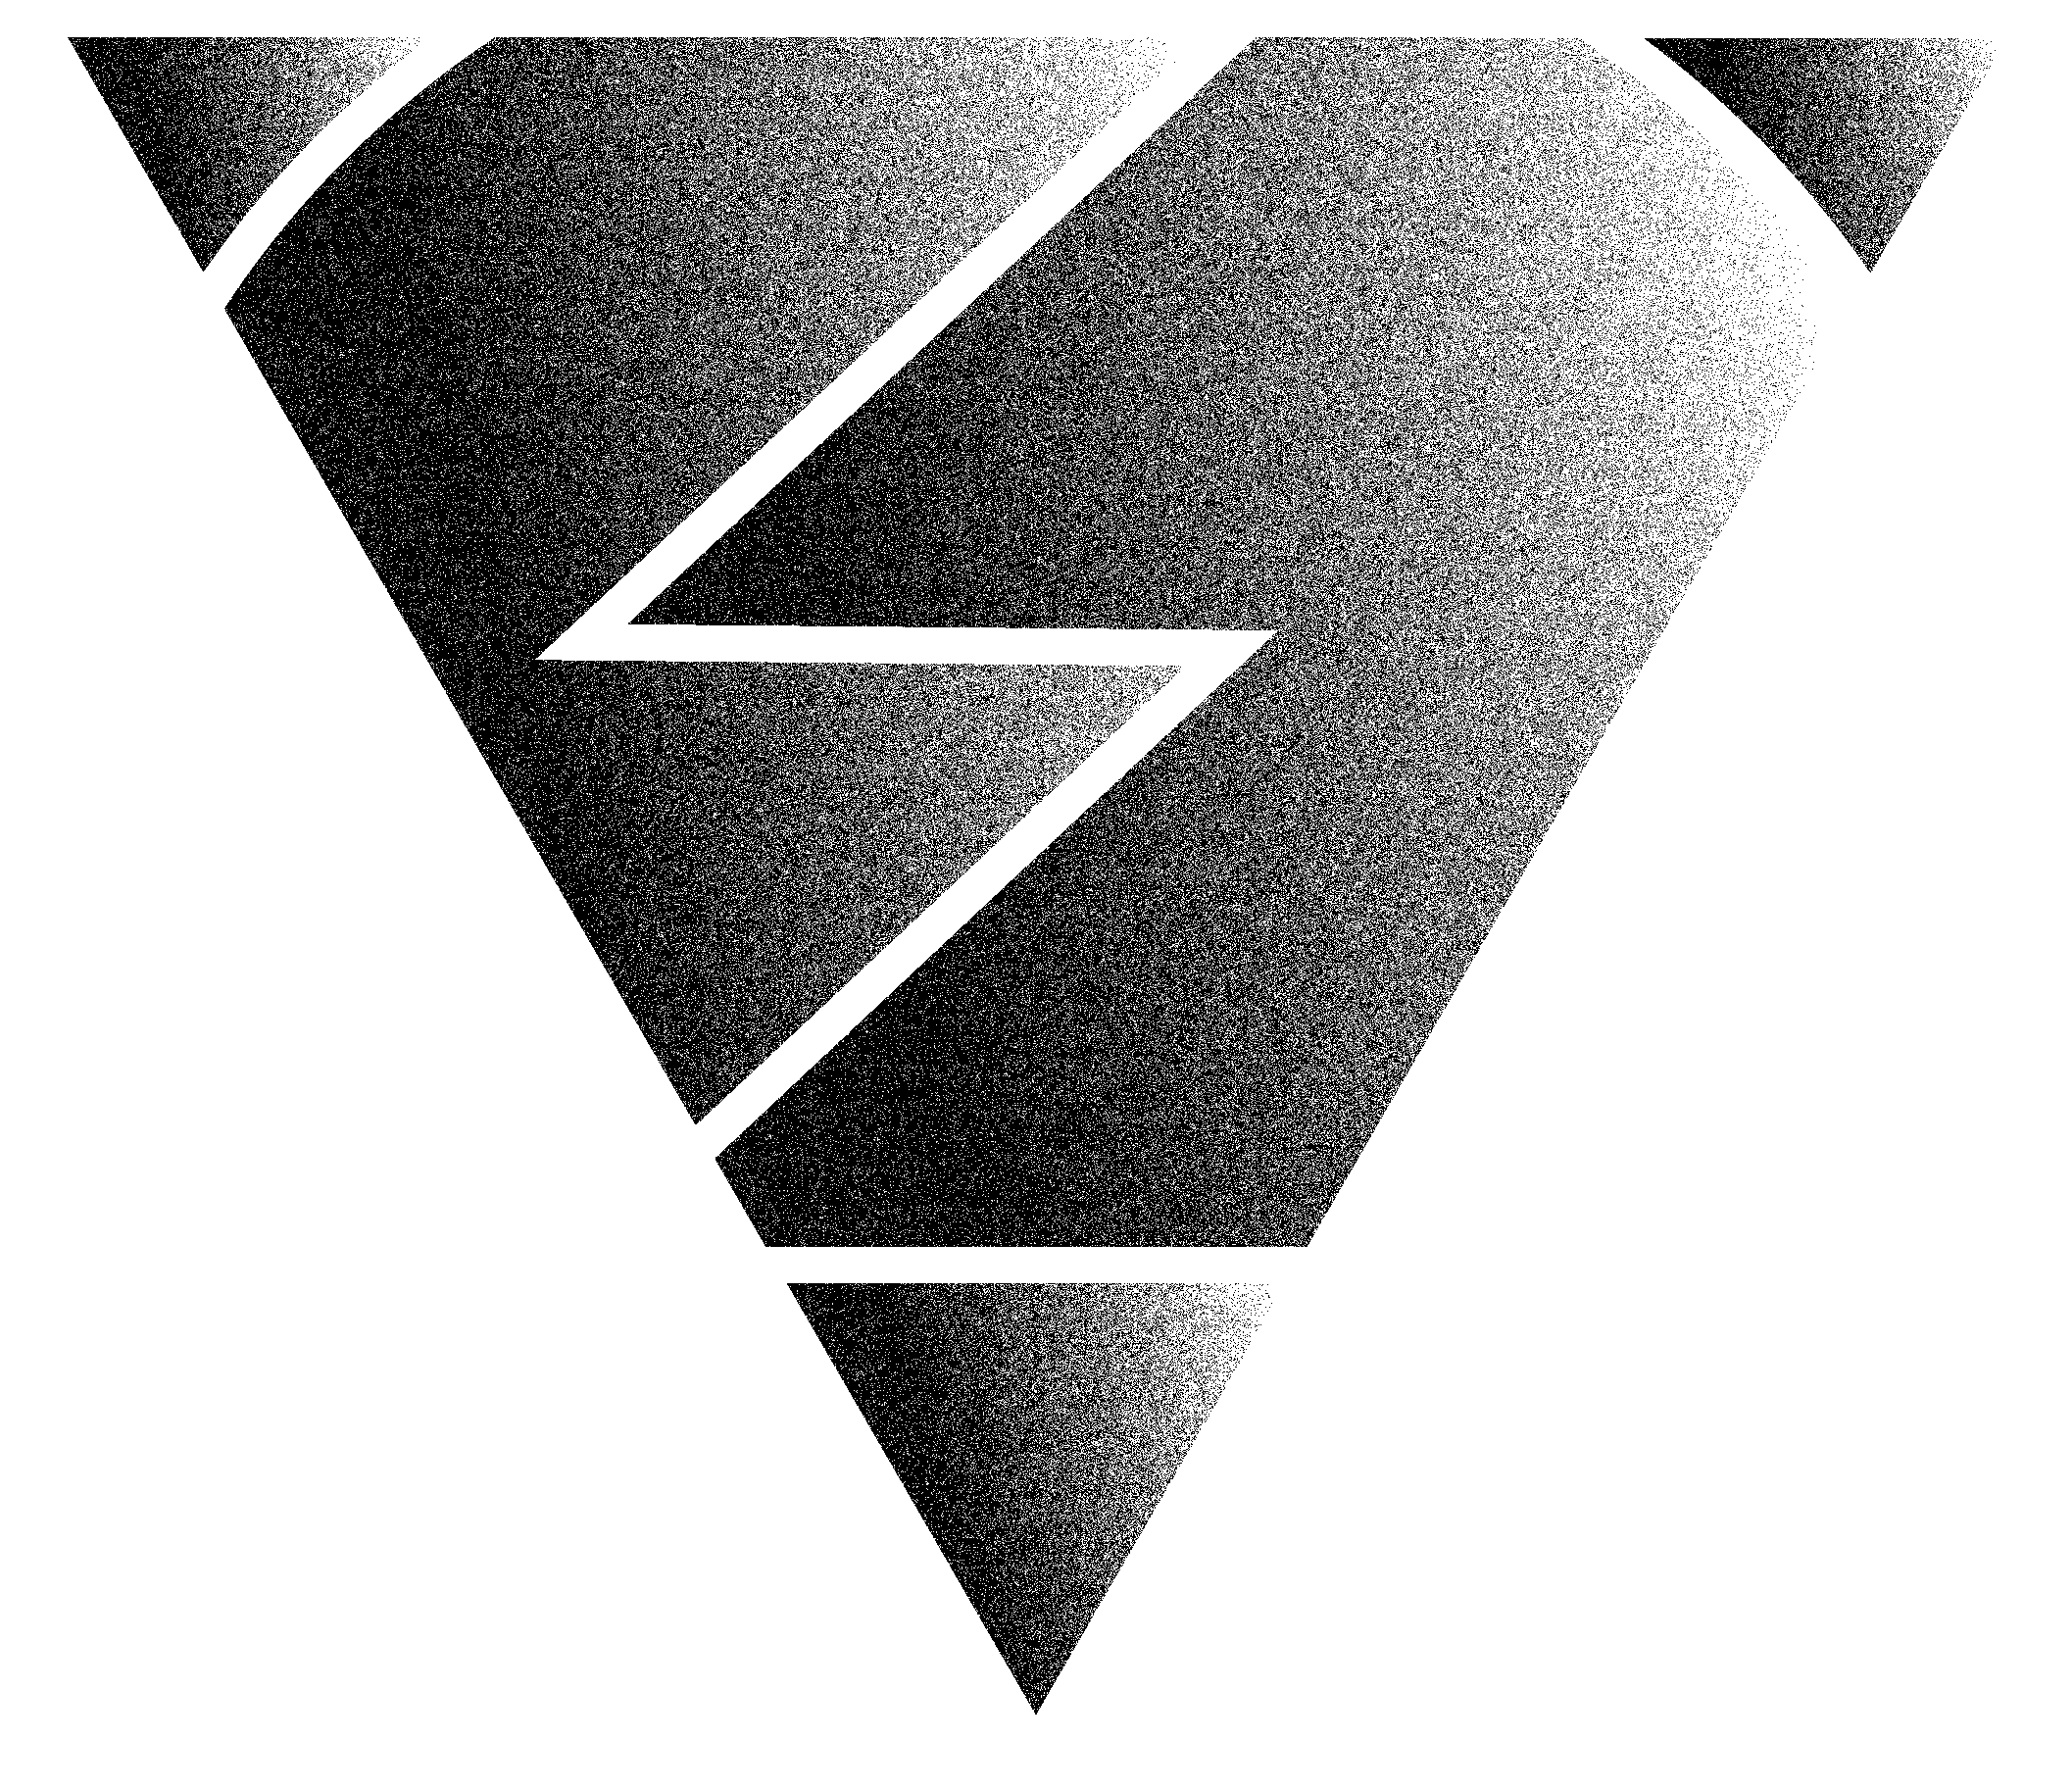 Black and White Grainey Upside Down Pyramid Face with Zigzag Patterns overlayed in White